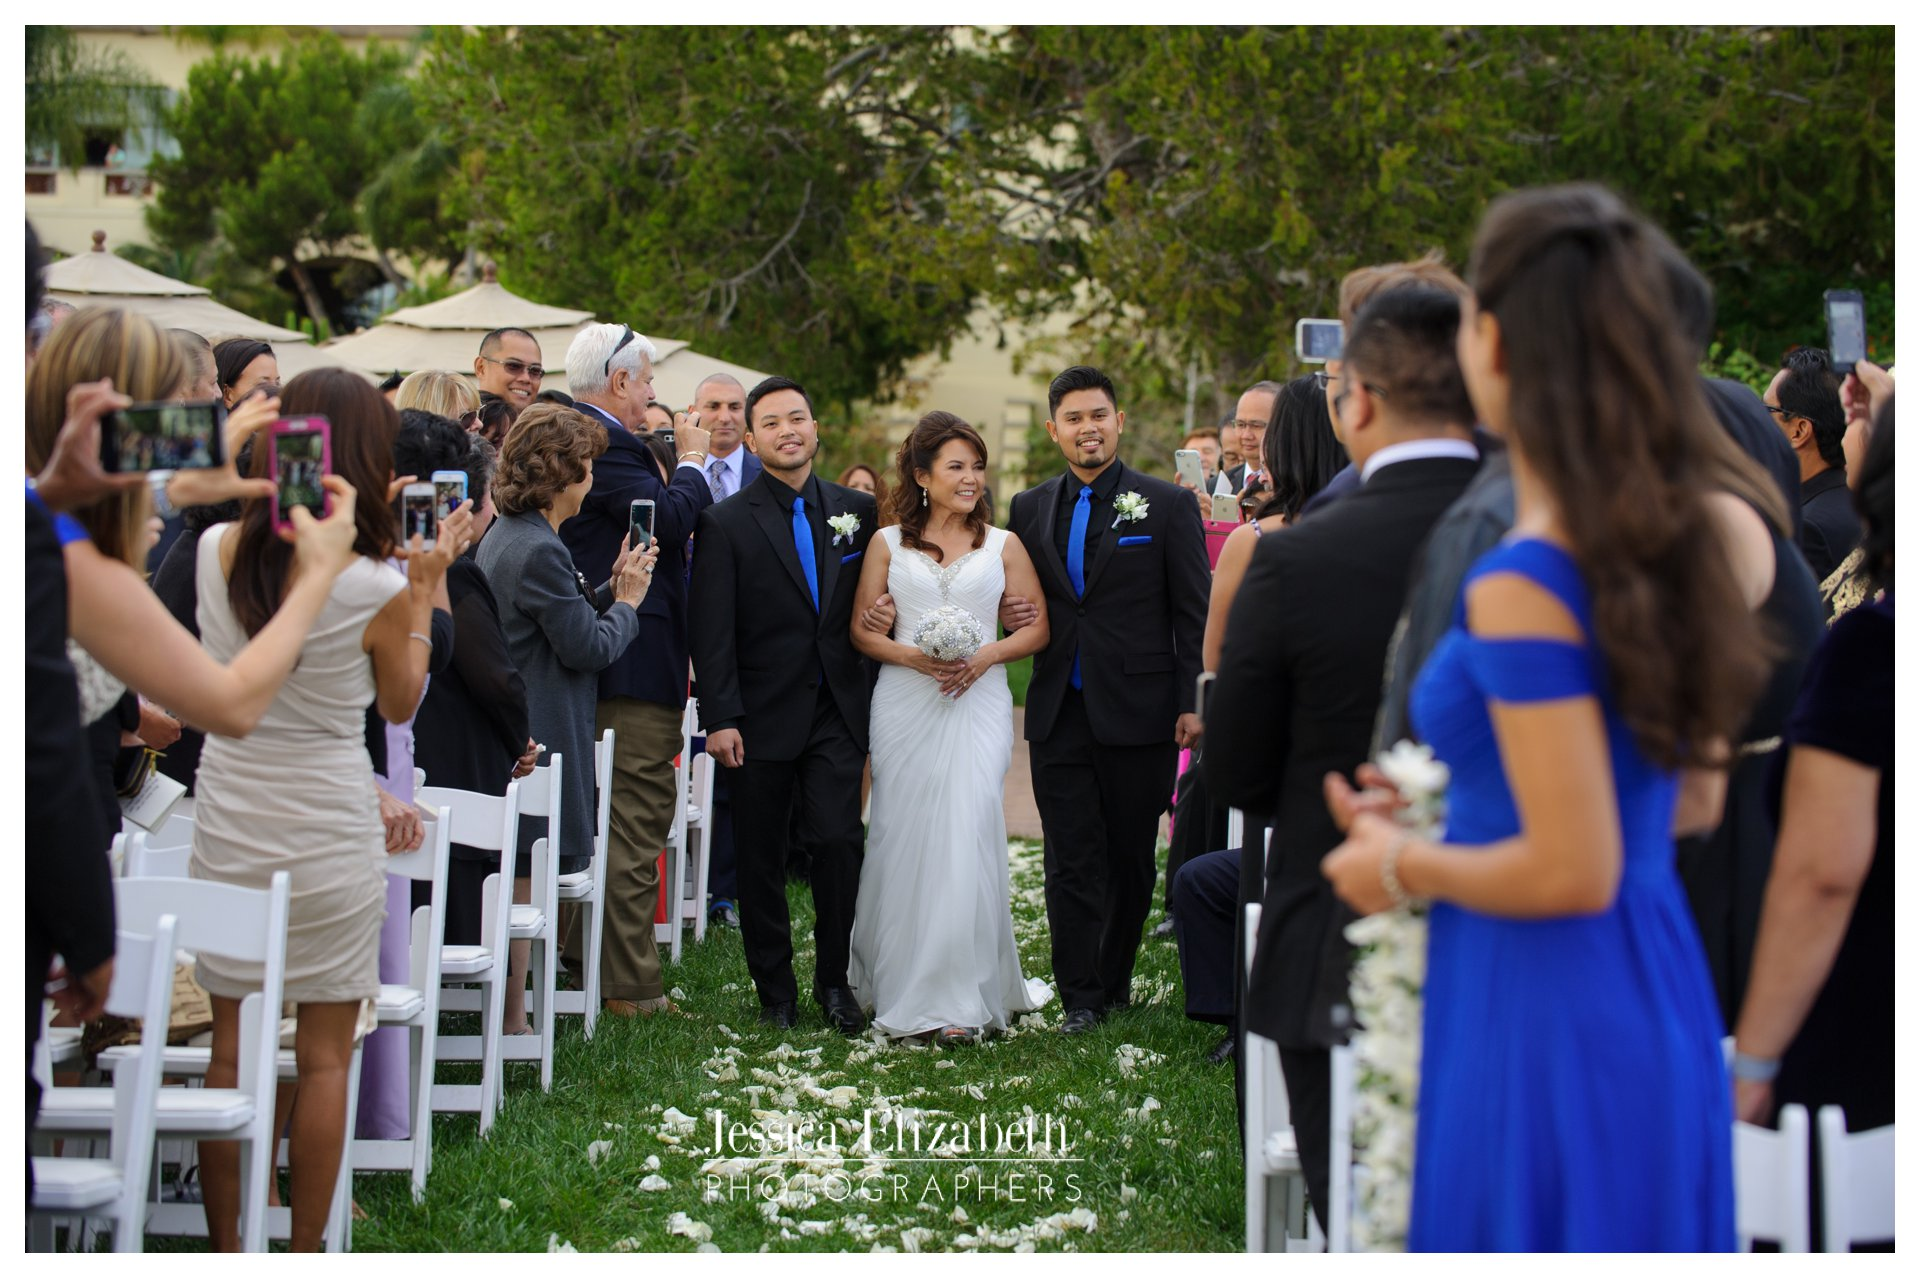 09-Terranea-Palos-Verdes-Wedding-Photography-by-Jessica-Elizabeth-w.jpg